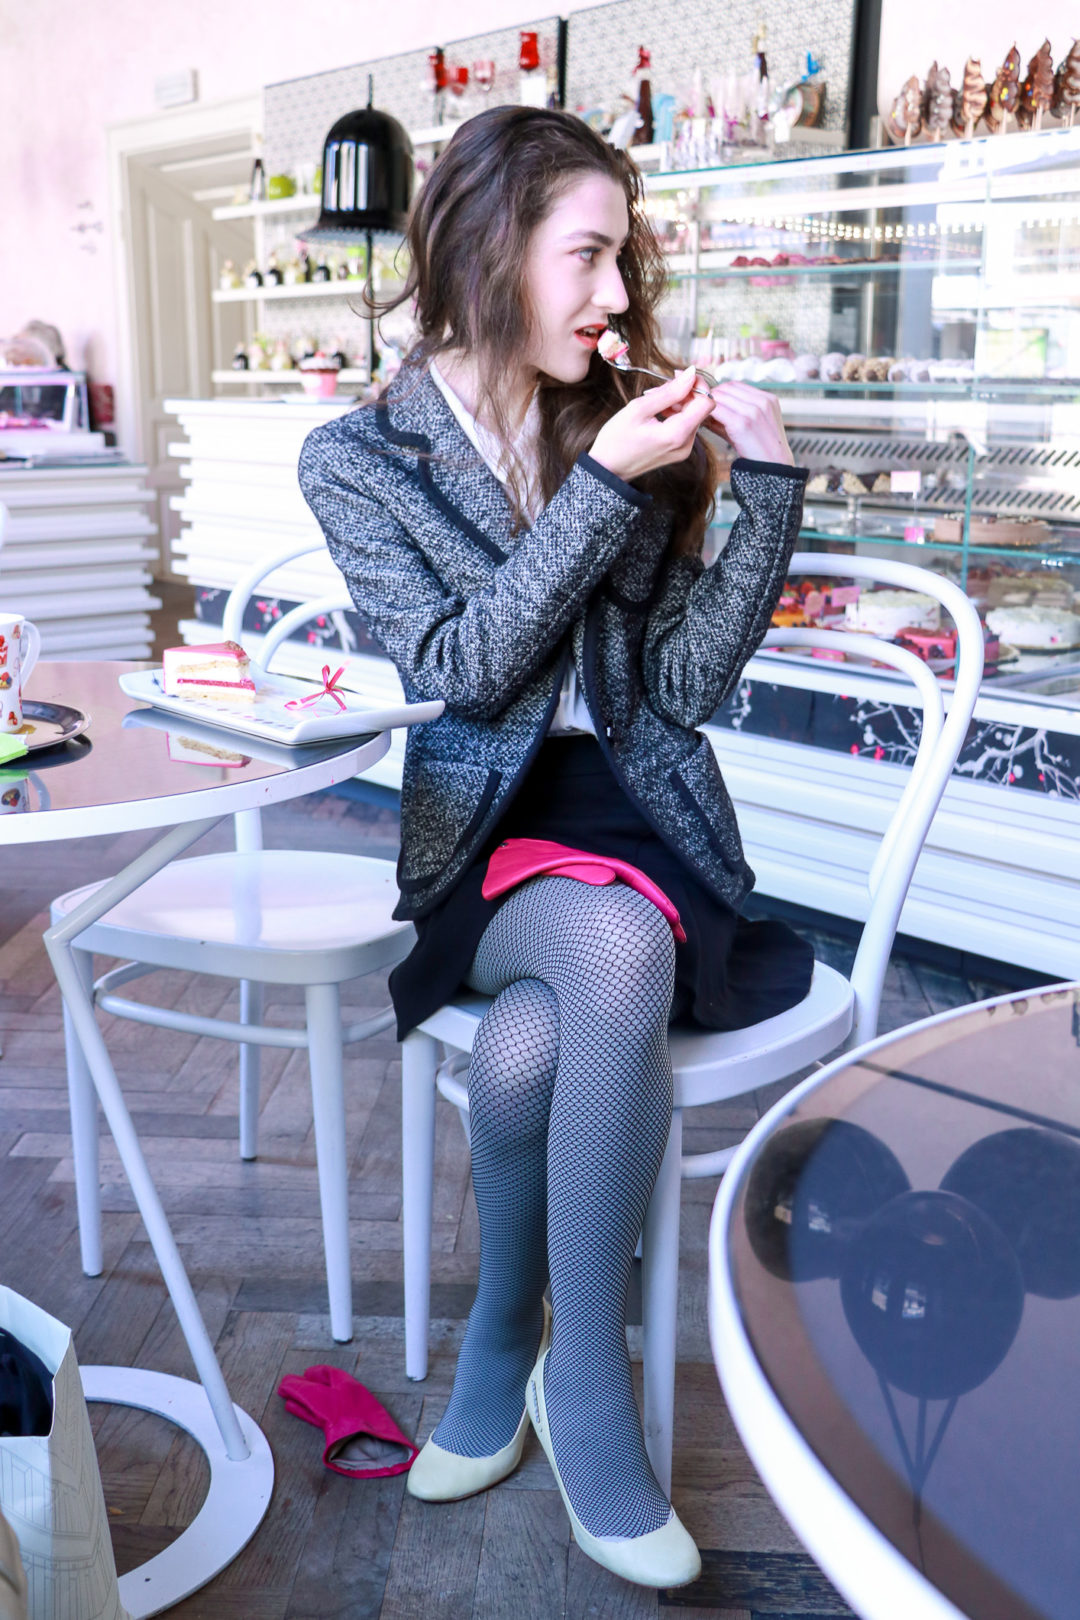 Fashion blogger Veronika Lipar of Brunette From Wall Street sharing 3 Ways to wear the fishnet tights this winter